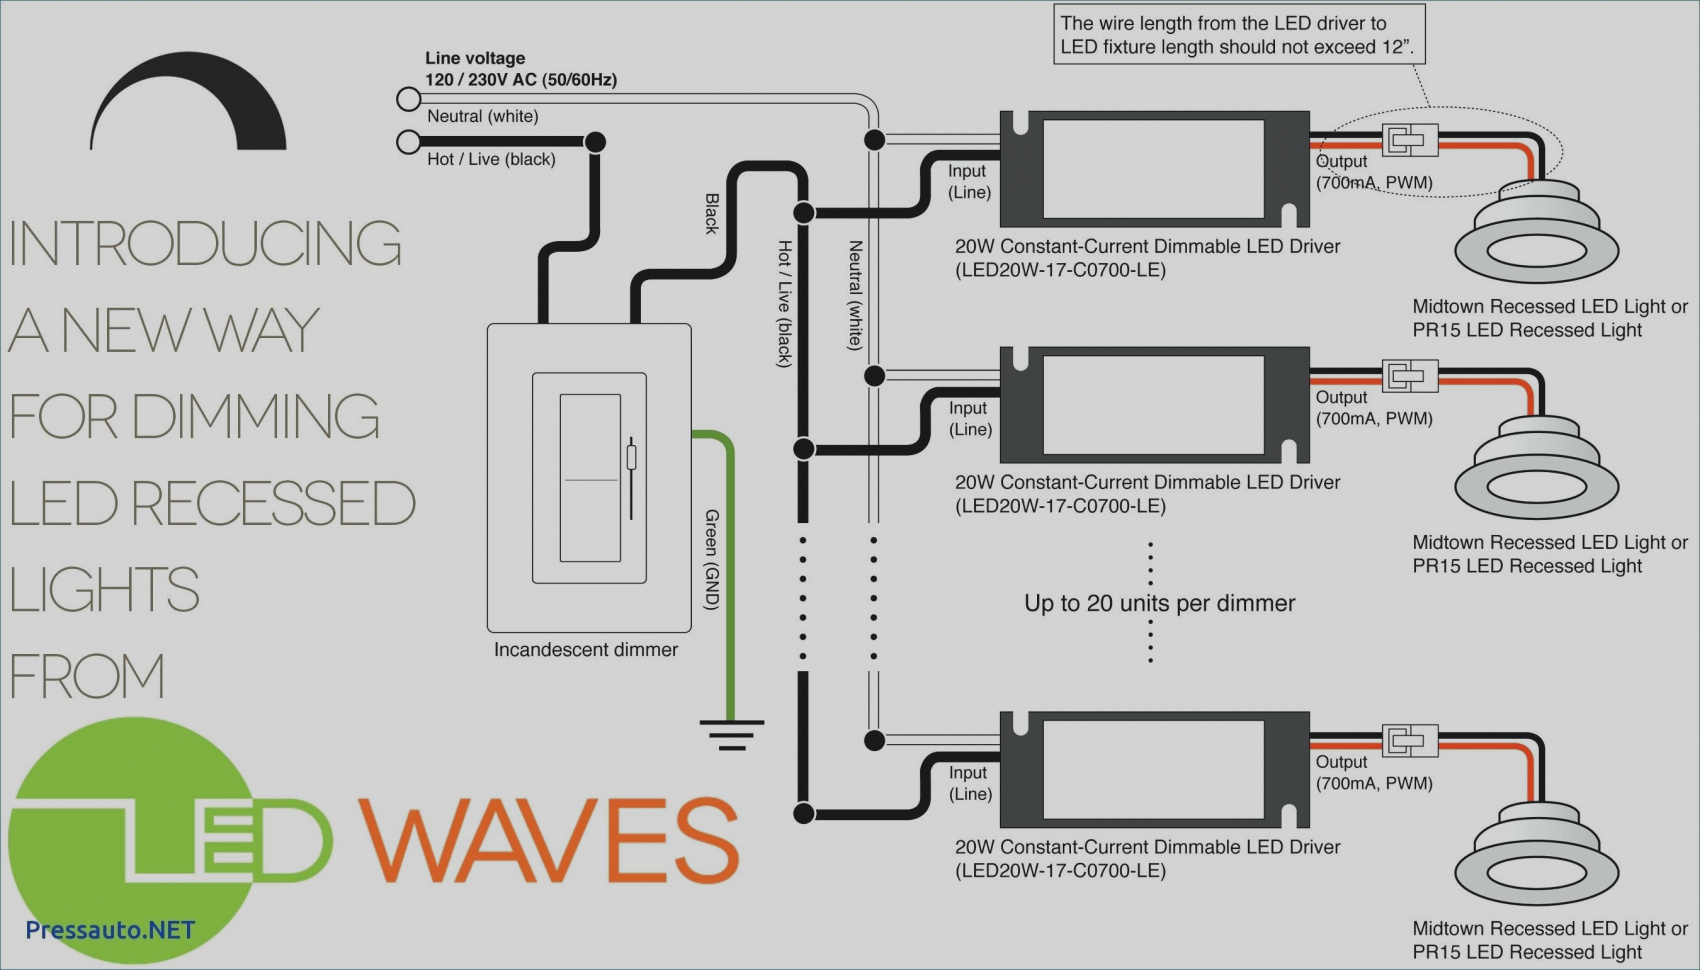 0 10v Dimming Ballast Wiring Diagram Collection | Wiring ... Ge Dimming Ballast Wiring Diagram on